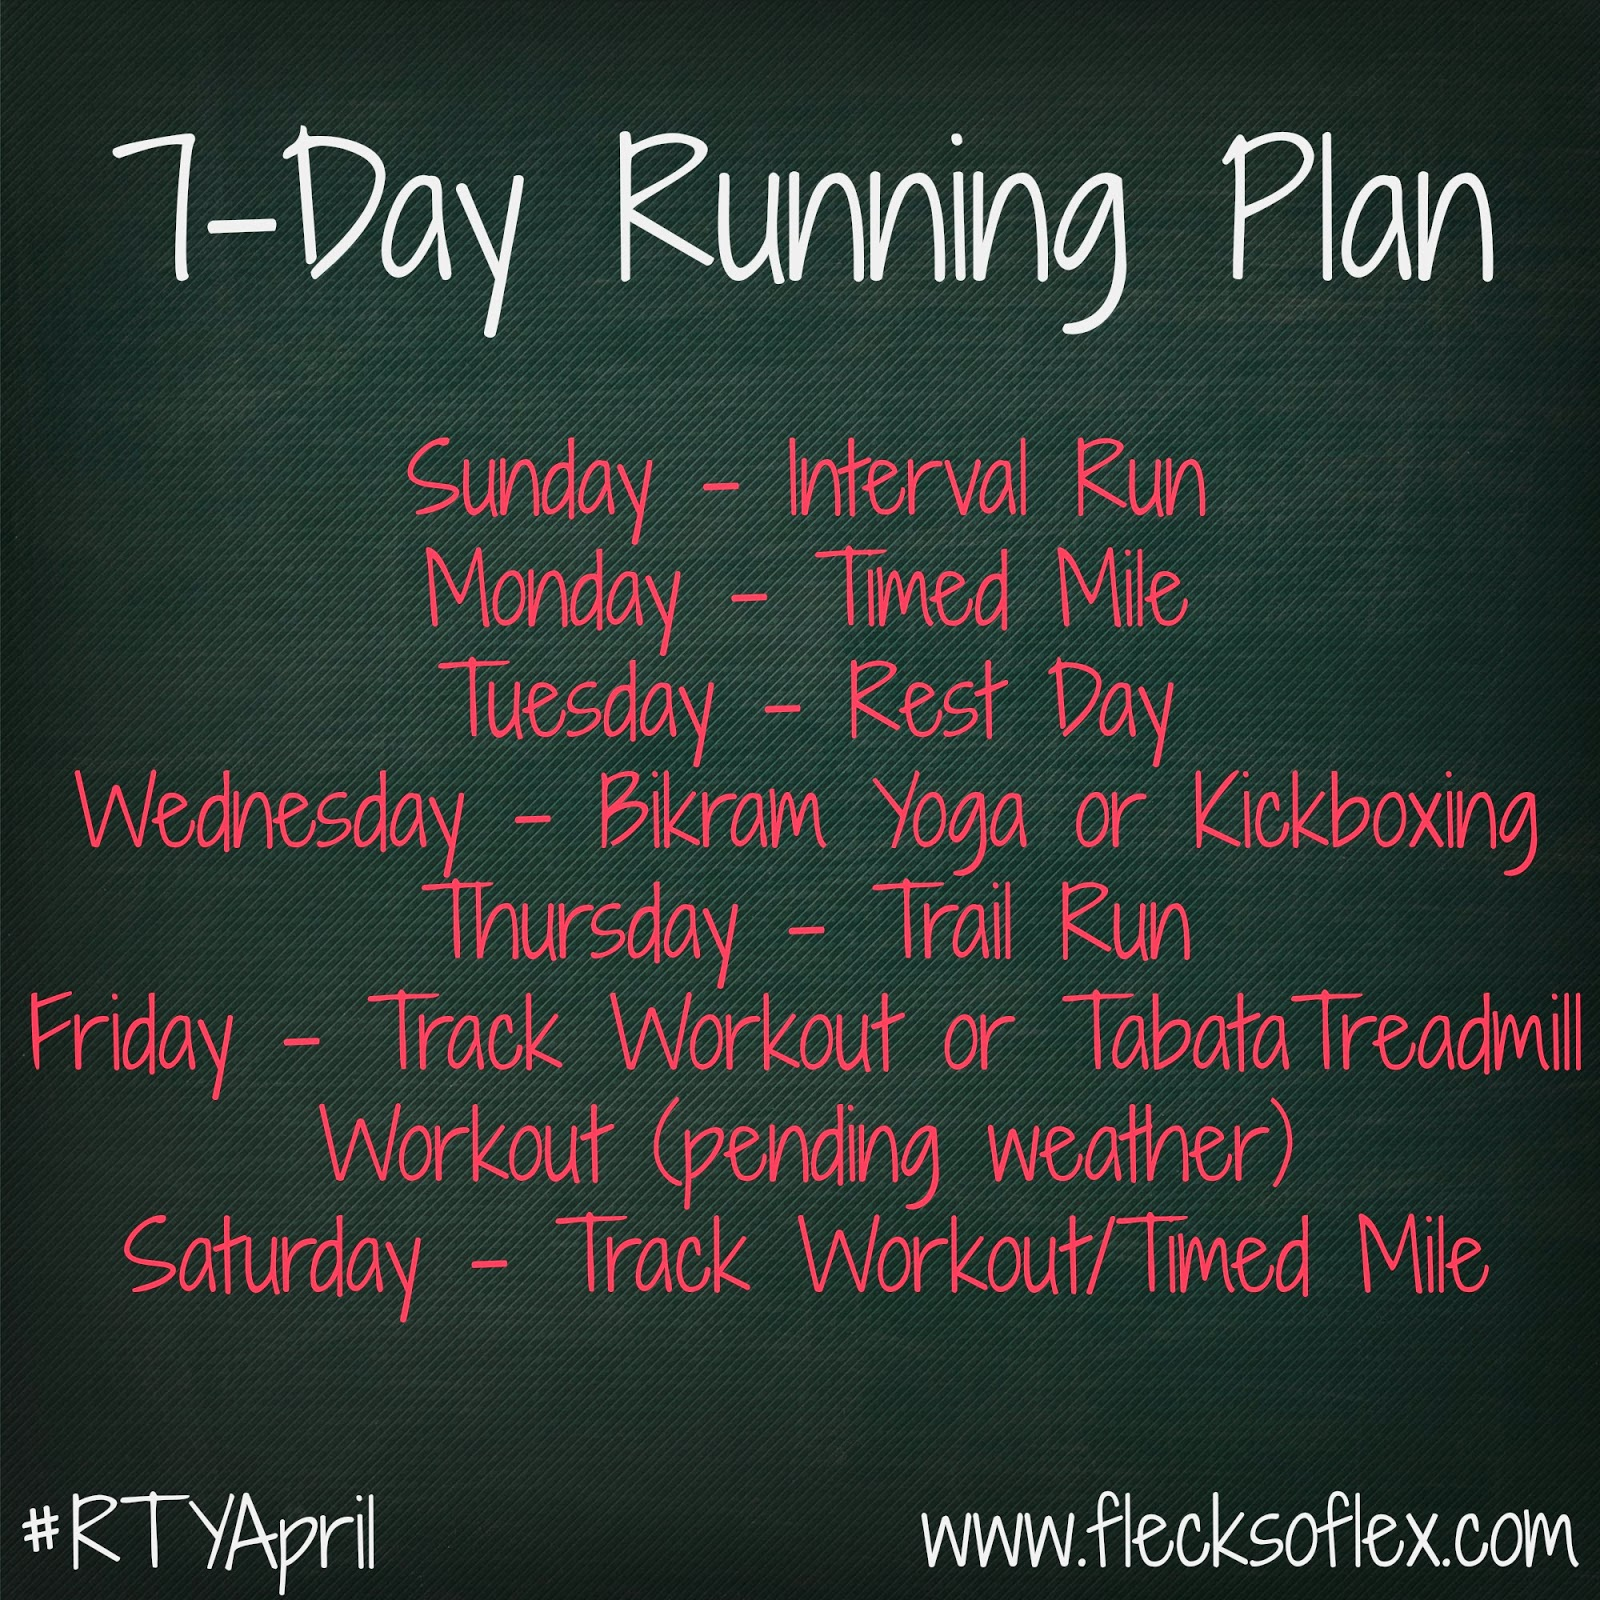 7-day running plan